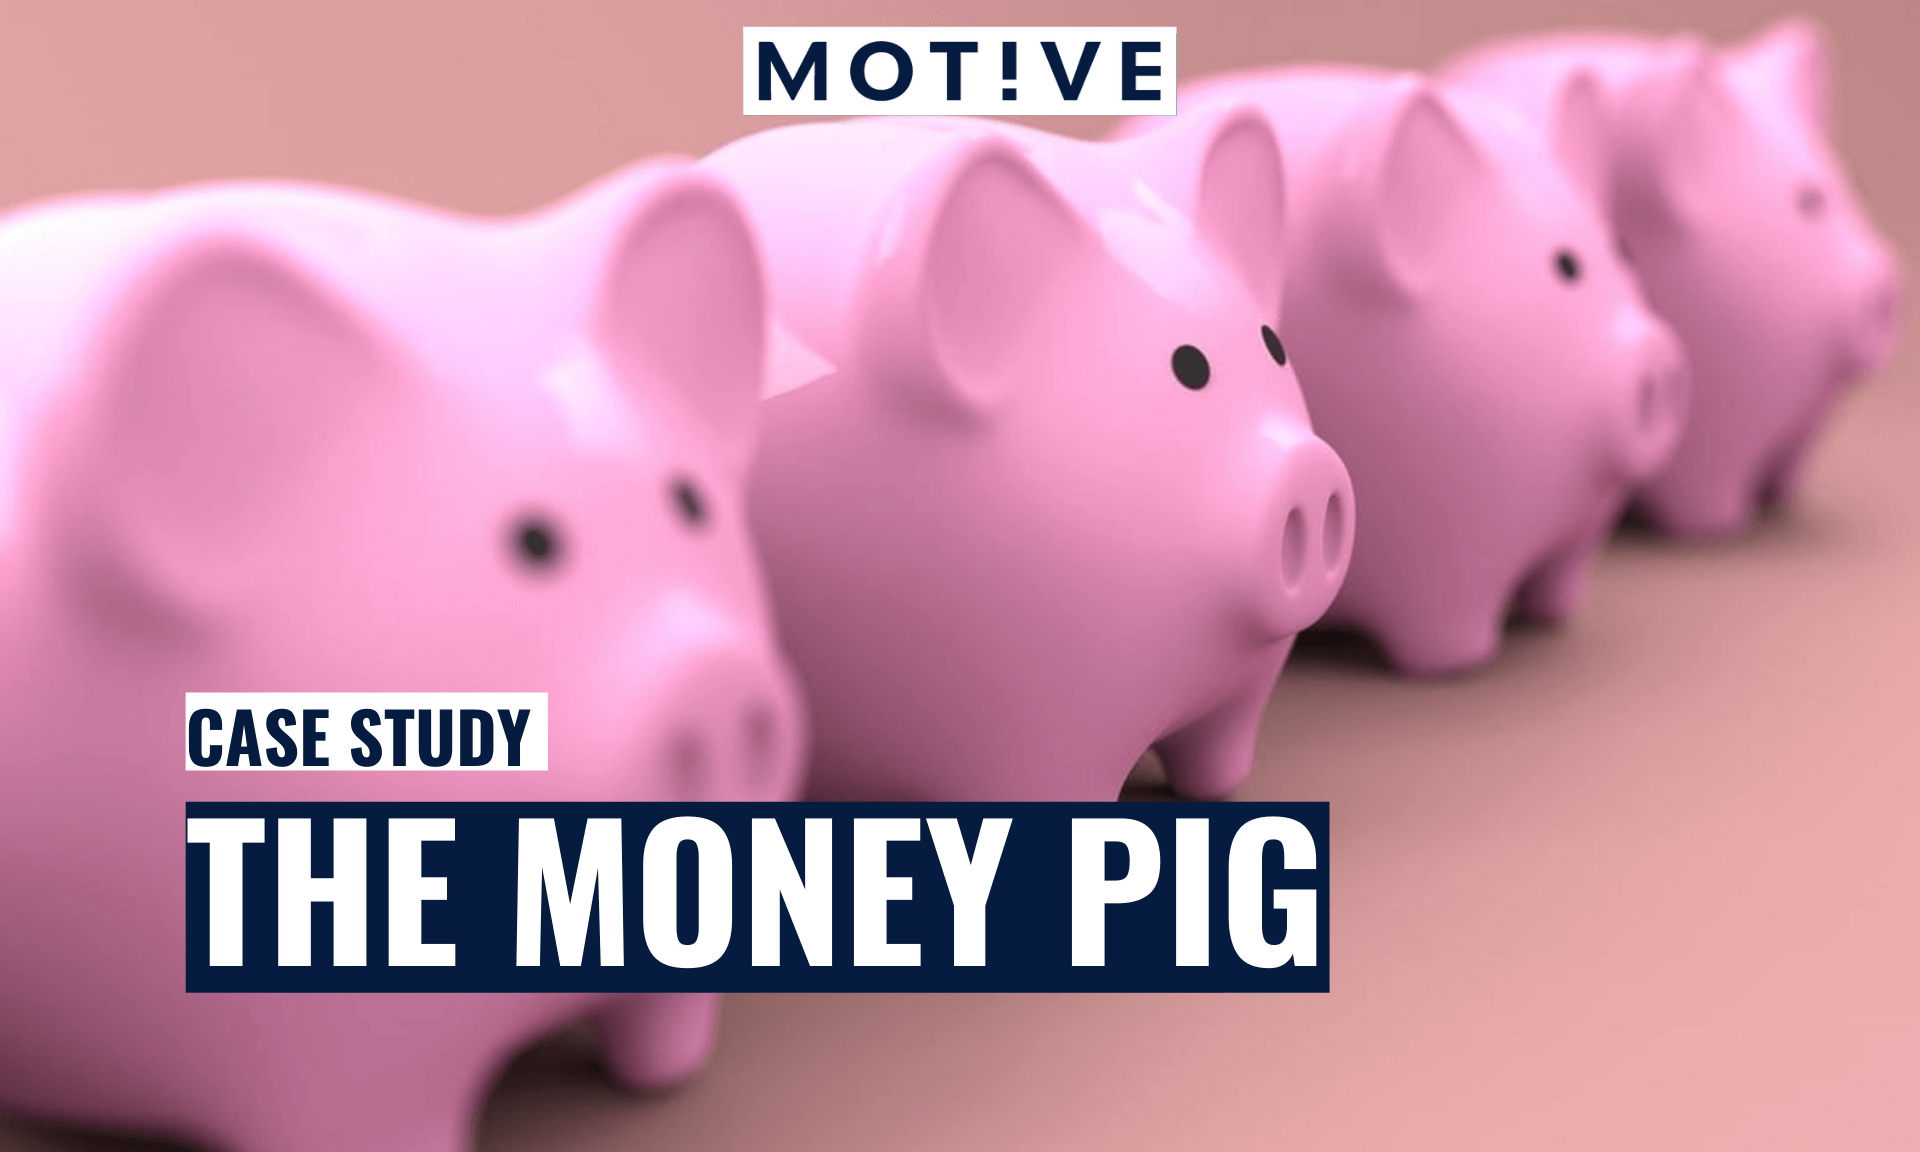 The Money Pig